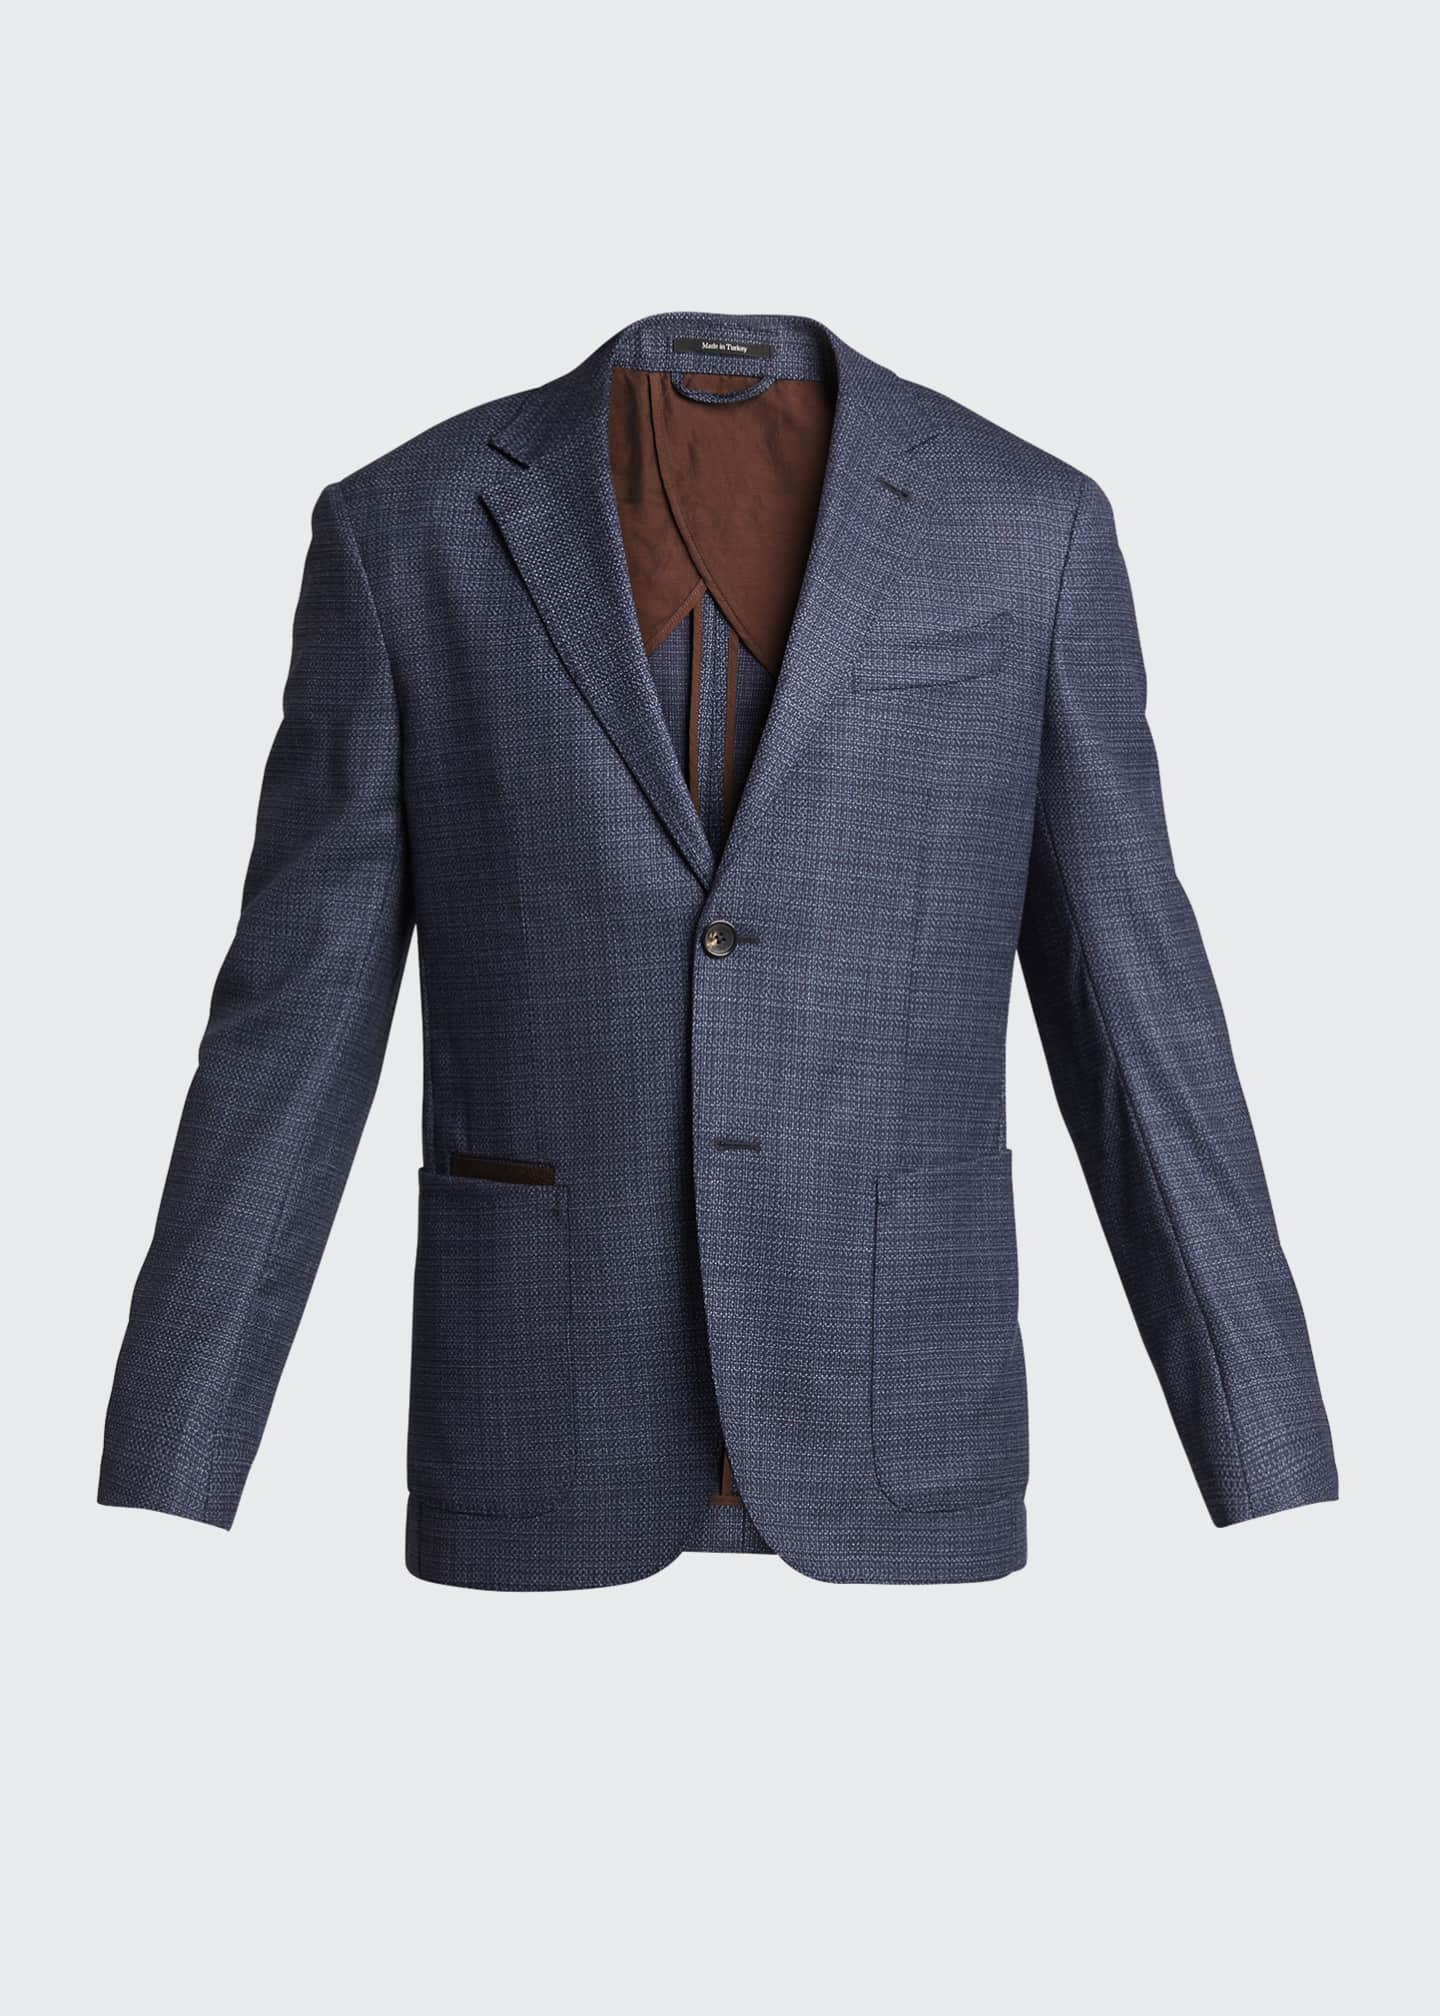 Image 5 of 5: Men's Heathered Solid Blazer